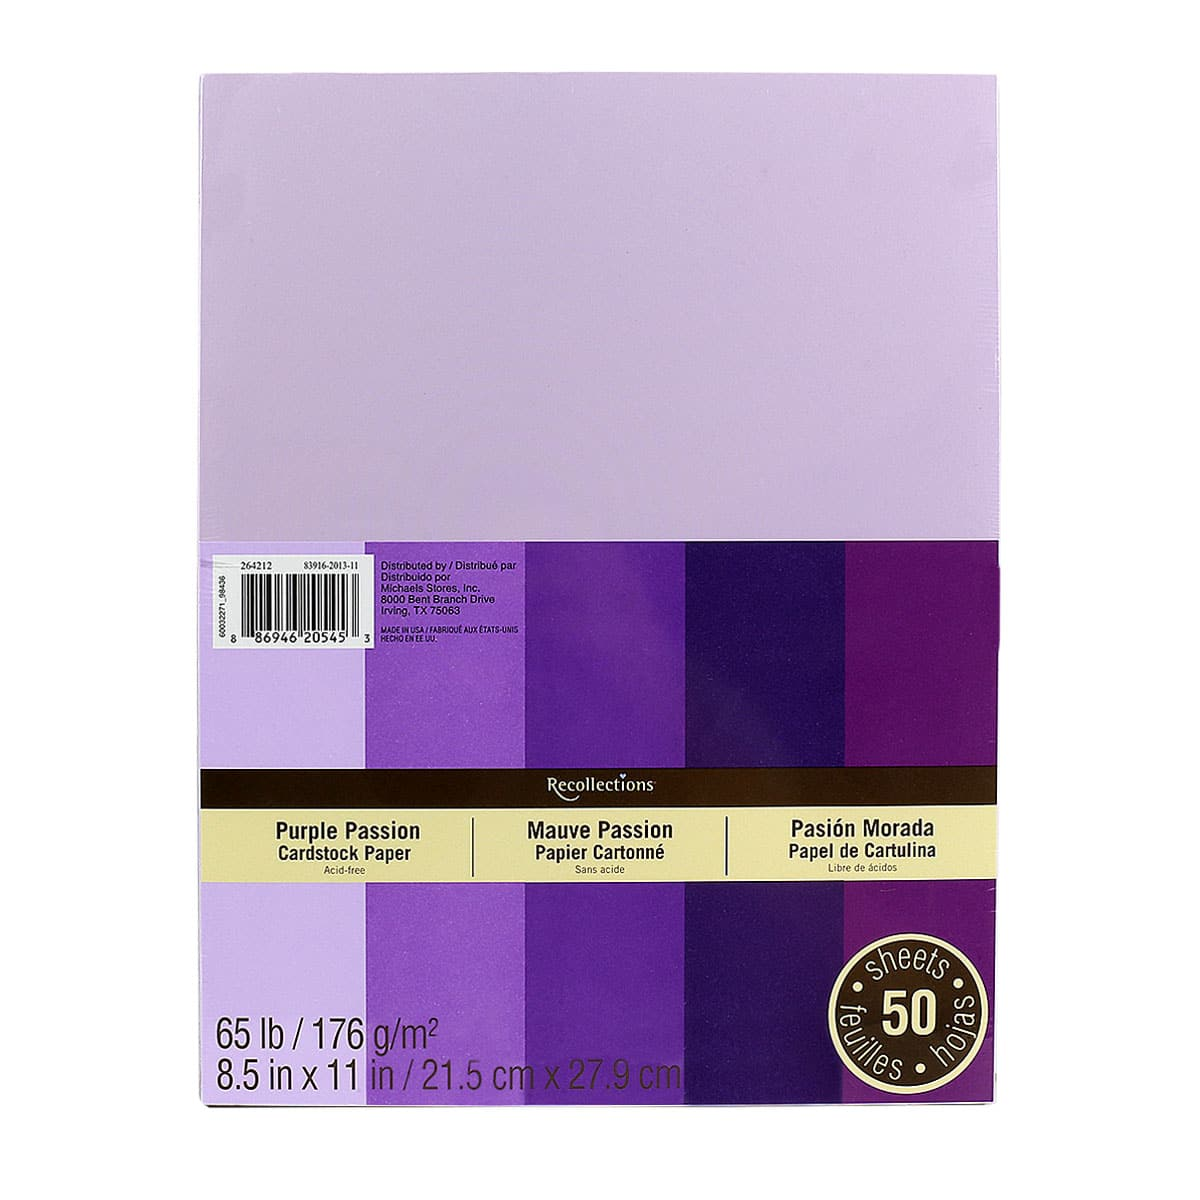 purple passion cardstock paper